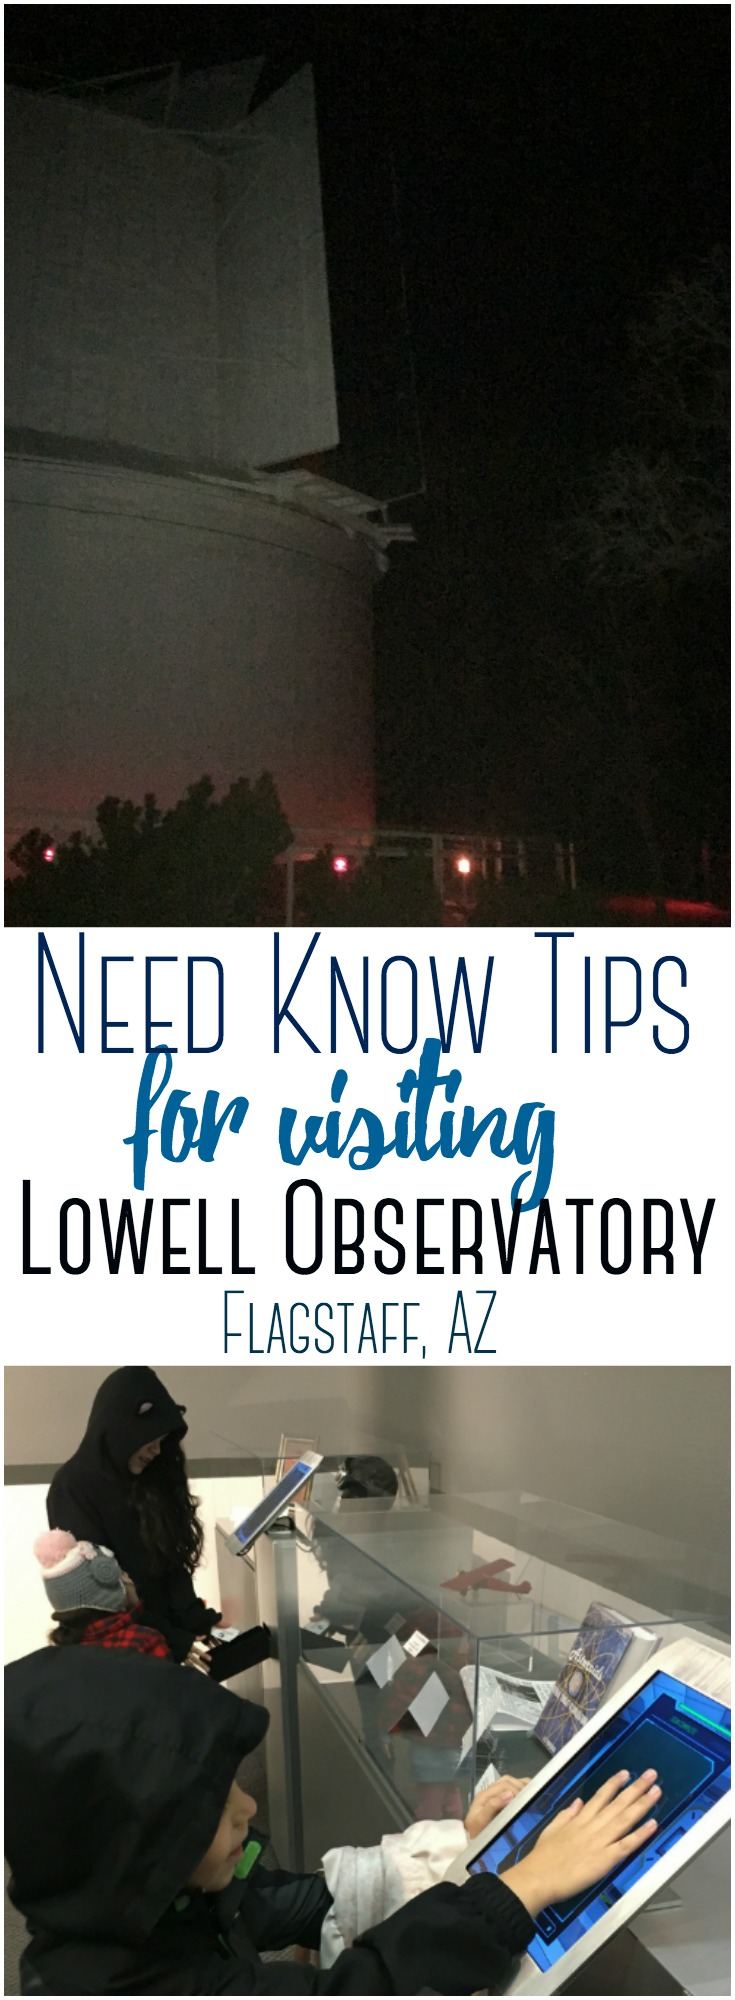 Lowell Observatory is an astronomical observatory in the heart of Flagstaff, Arizona. Established in 1894, it's also one of the oldest observatories, hosting over 80,000 visitors per year. Find out what you need to know before visiting the Observatory with your family!  #Flagstaff #Astronomy #LowellObservatory #RoadTrip #Arizona #ThingstoDo #Southwest #Kids